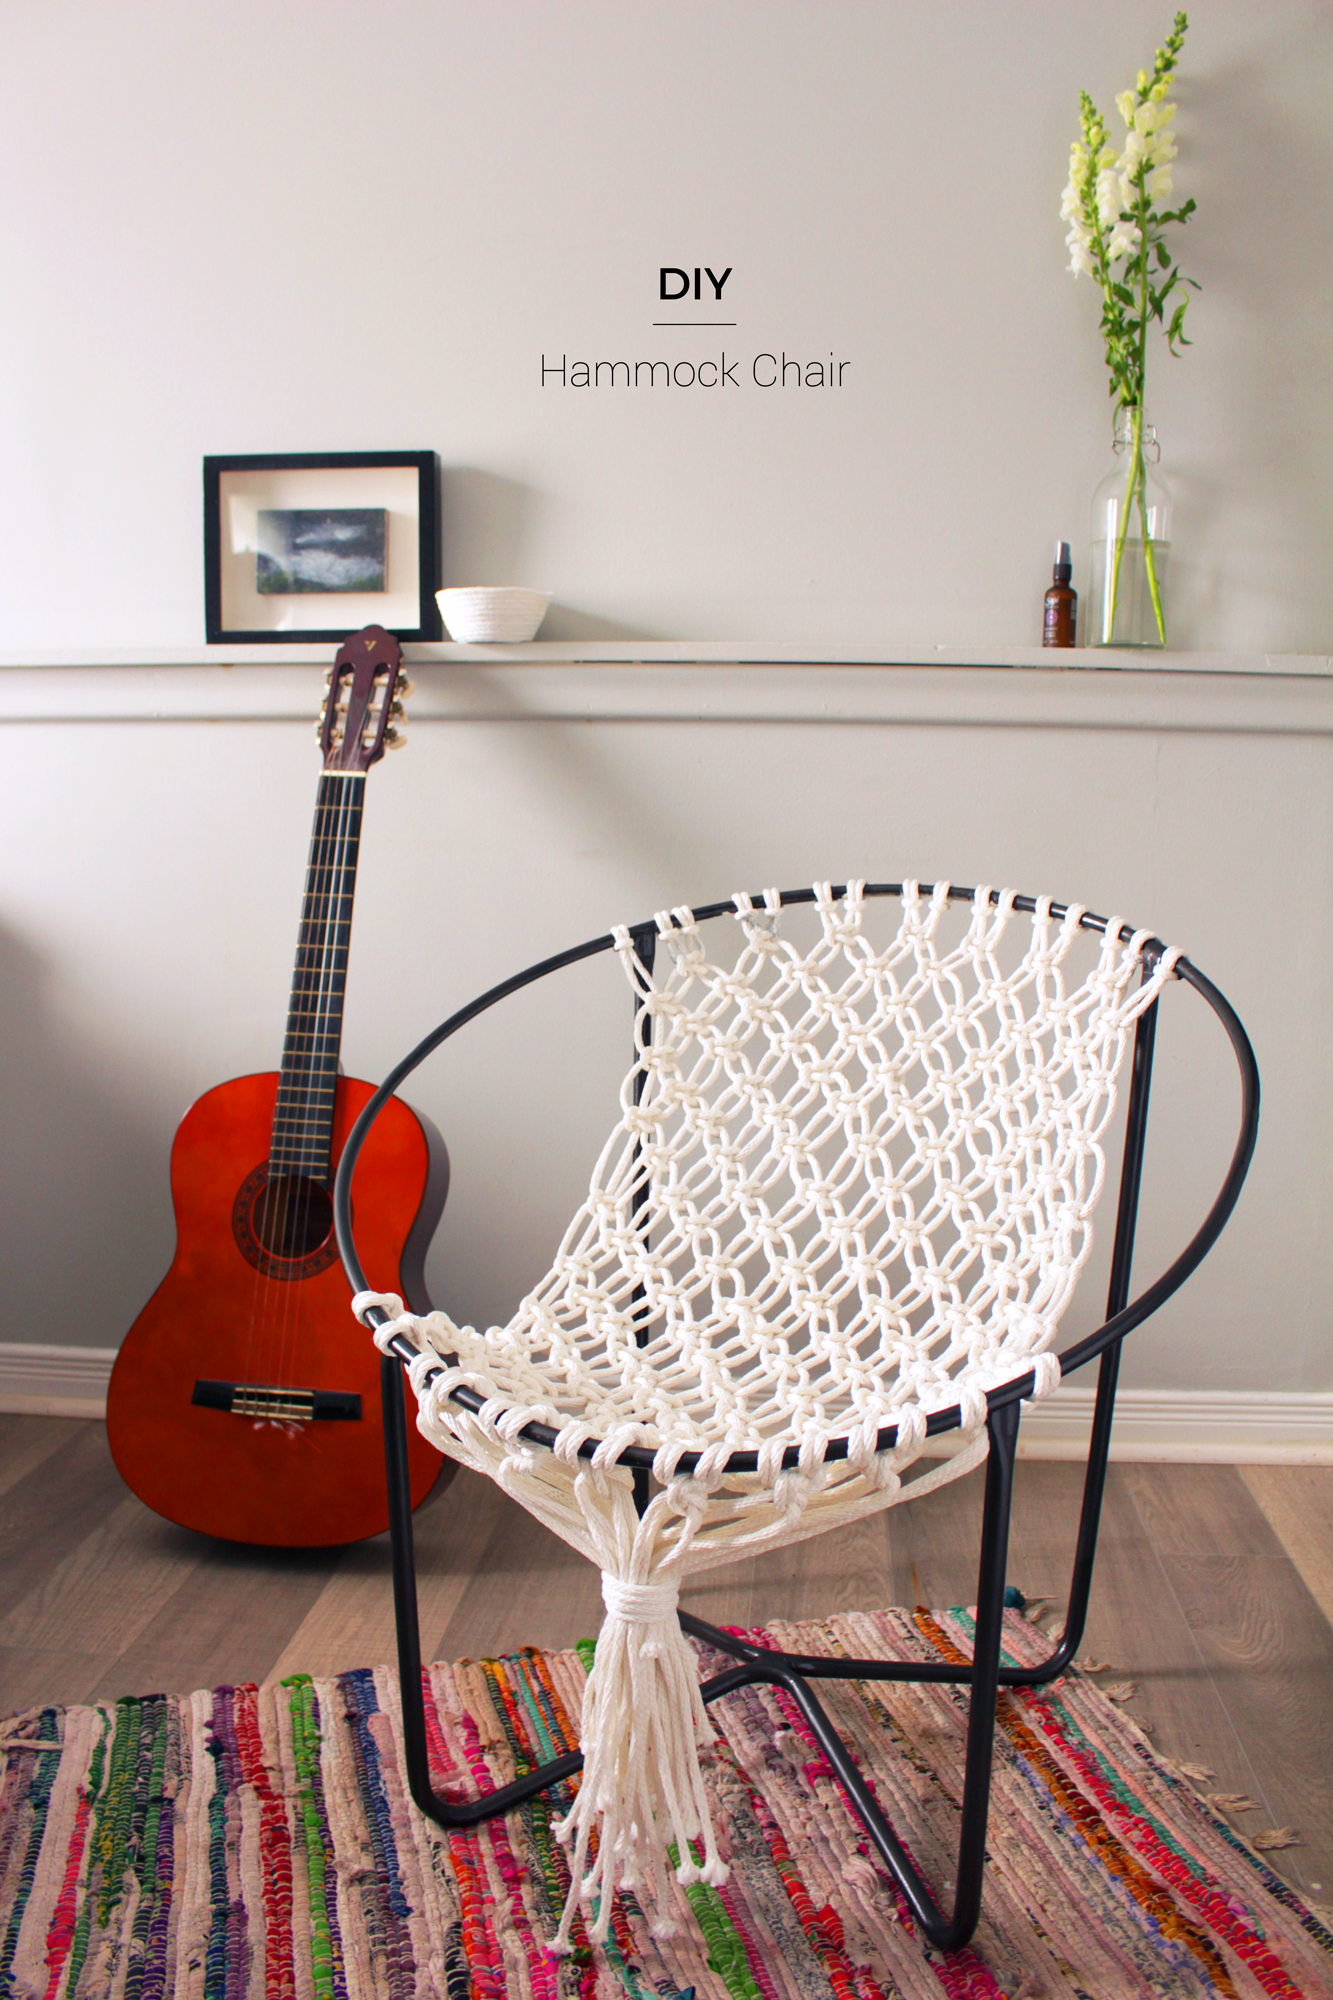 diy hanging chair in bedroom small chairs for macrame hammock crochet knitting weaving